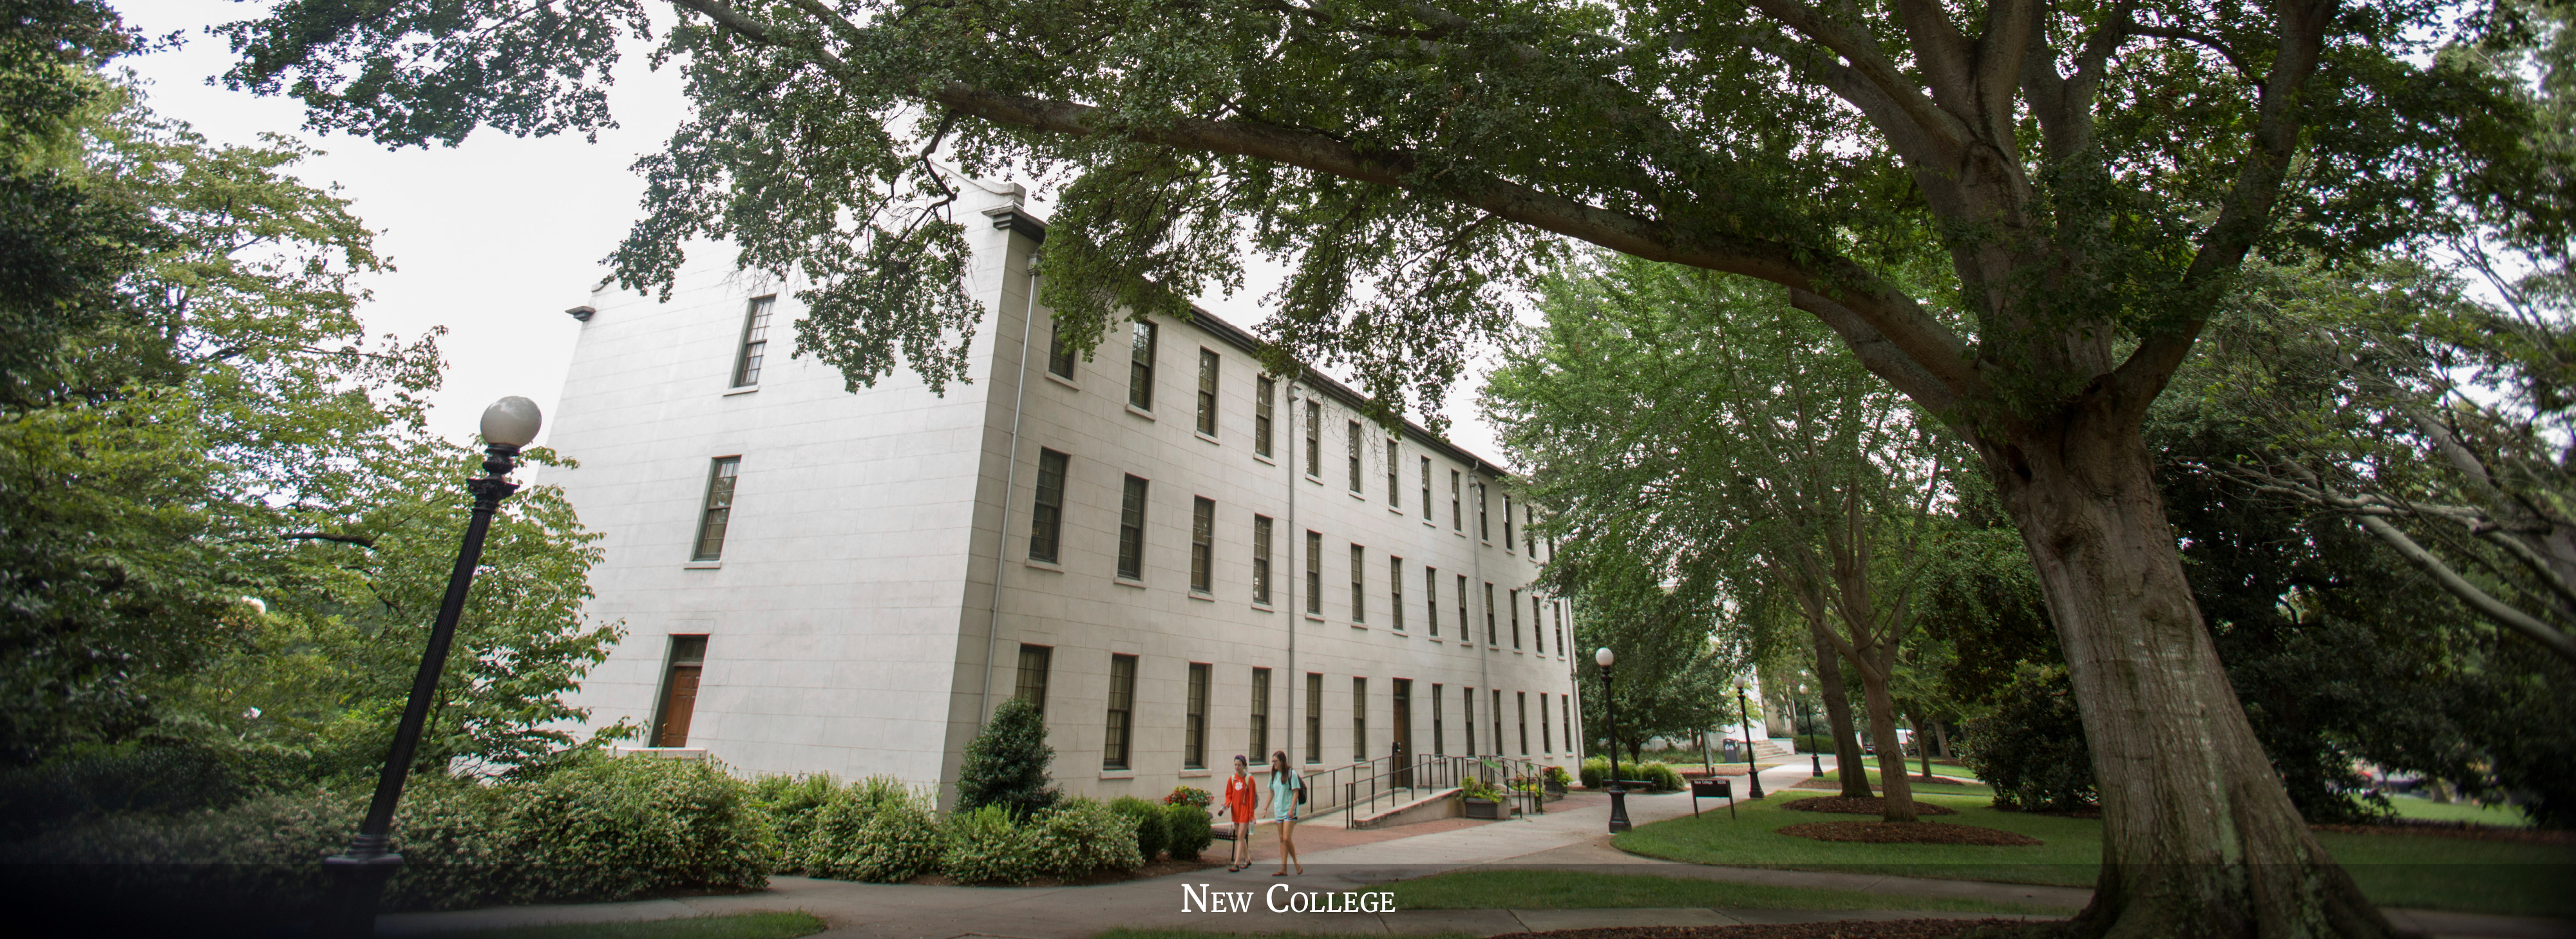 The Office of Faculty Affairs is located in New College on historic North Campus.